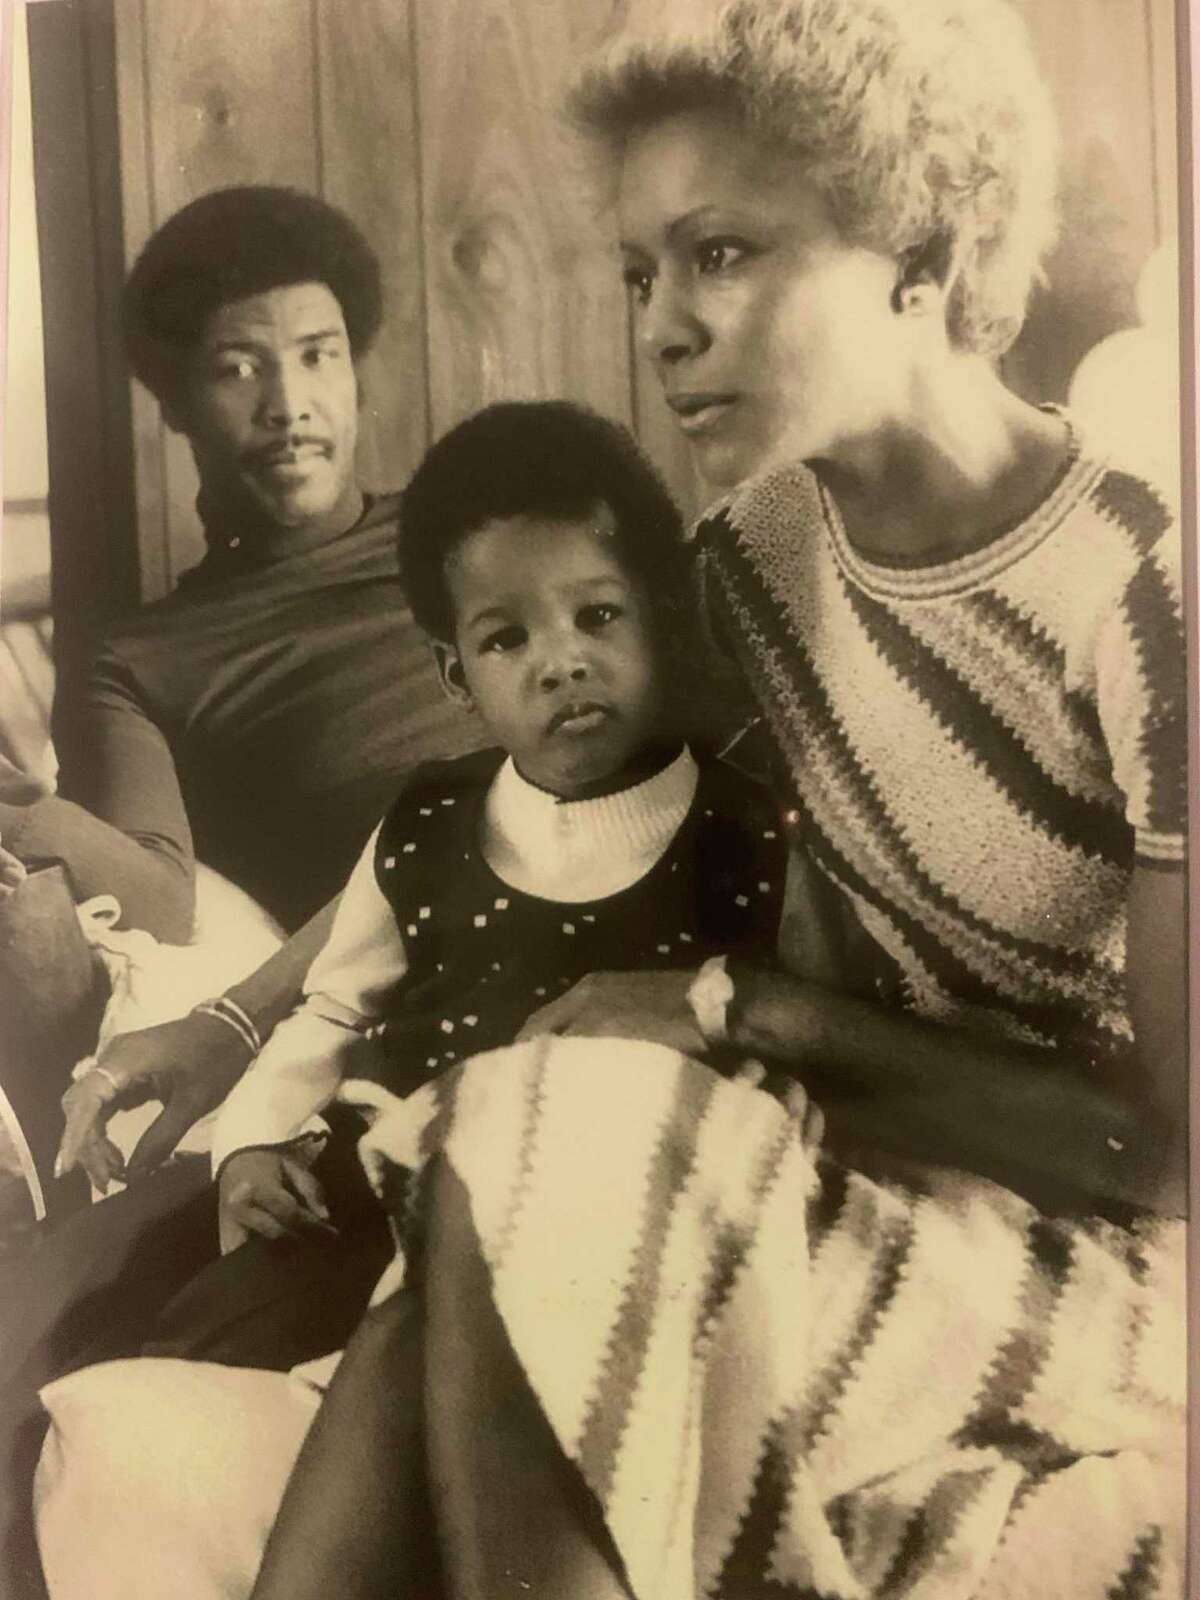 With his father Paul Silas in the background, Stephen Silas is with his mom Carolyn in the mid-1970s when the family was in Boston.